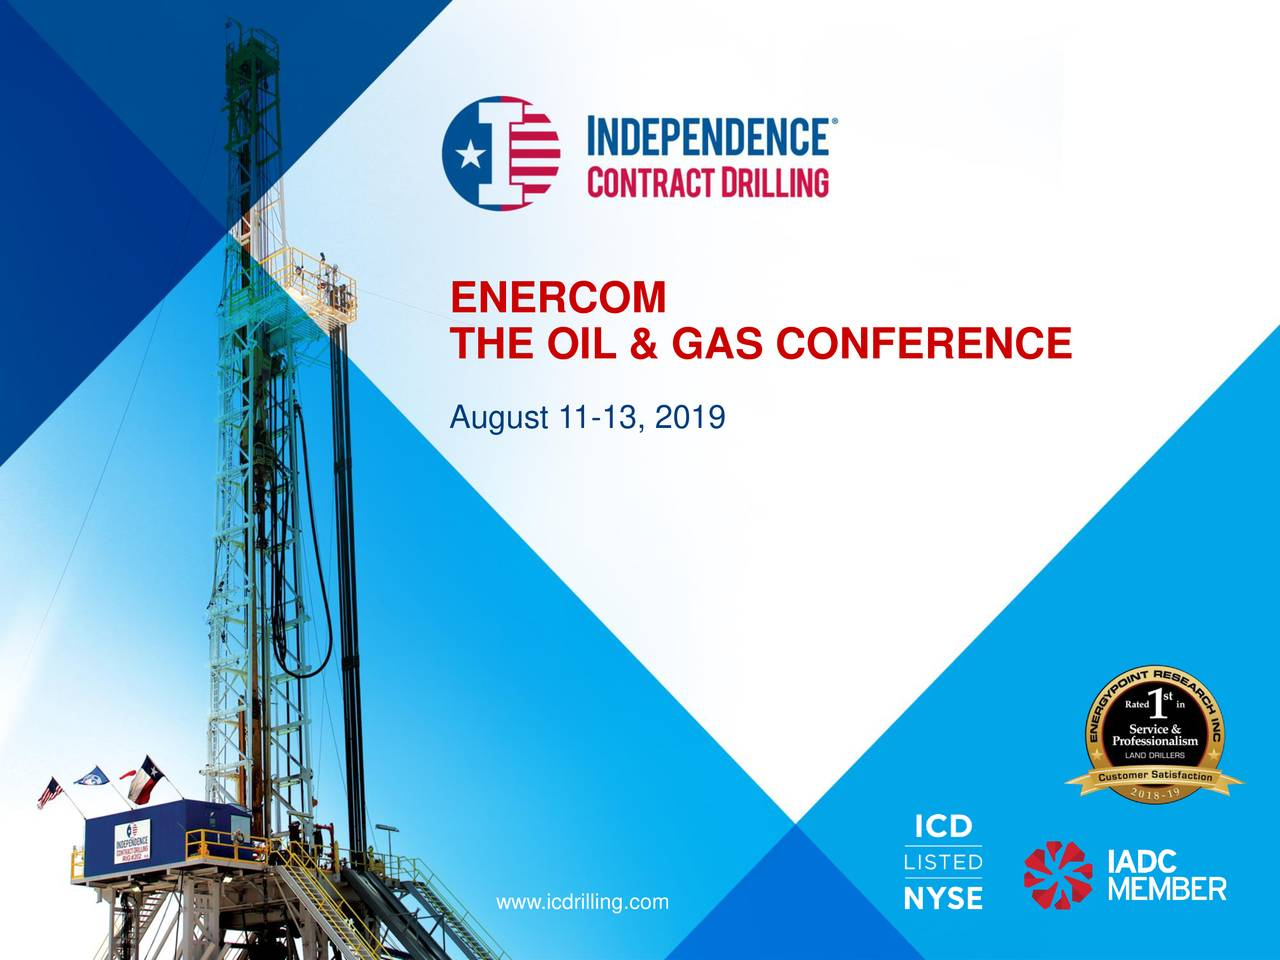 Independence Contract Drilling (ICD) Presents At EnerCom Oil & Gas Conference - Slideshow